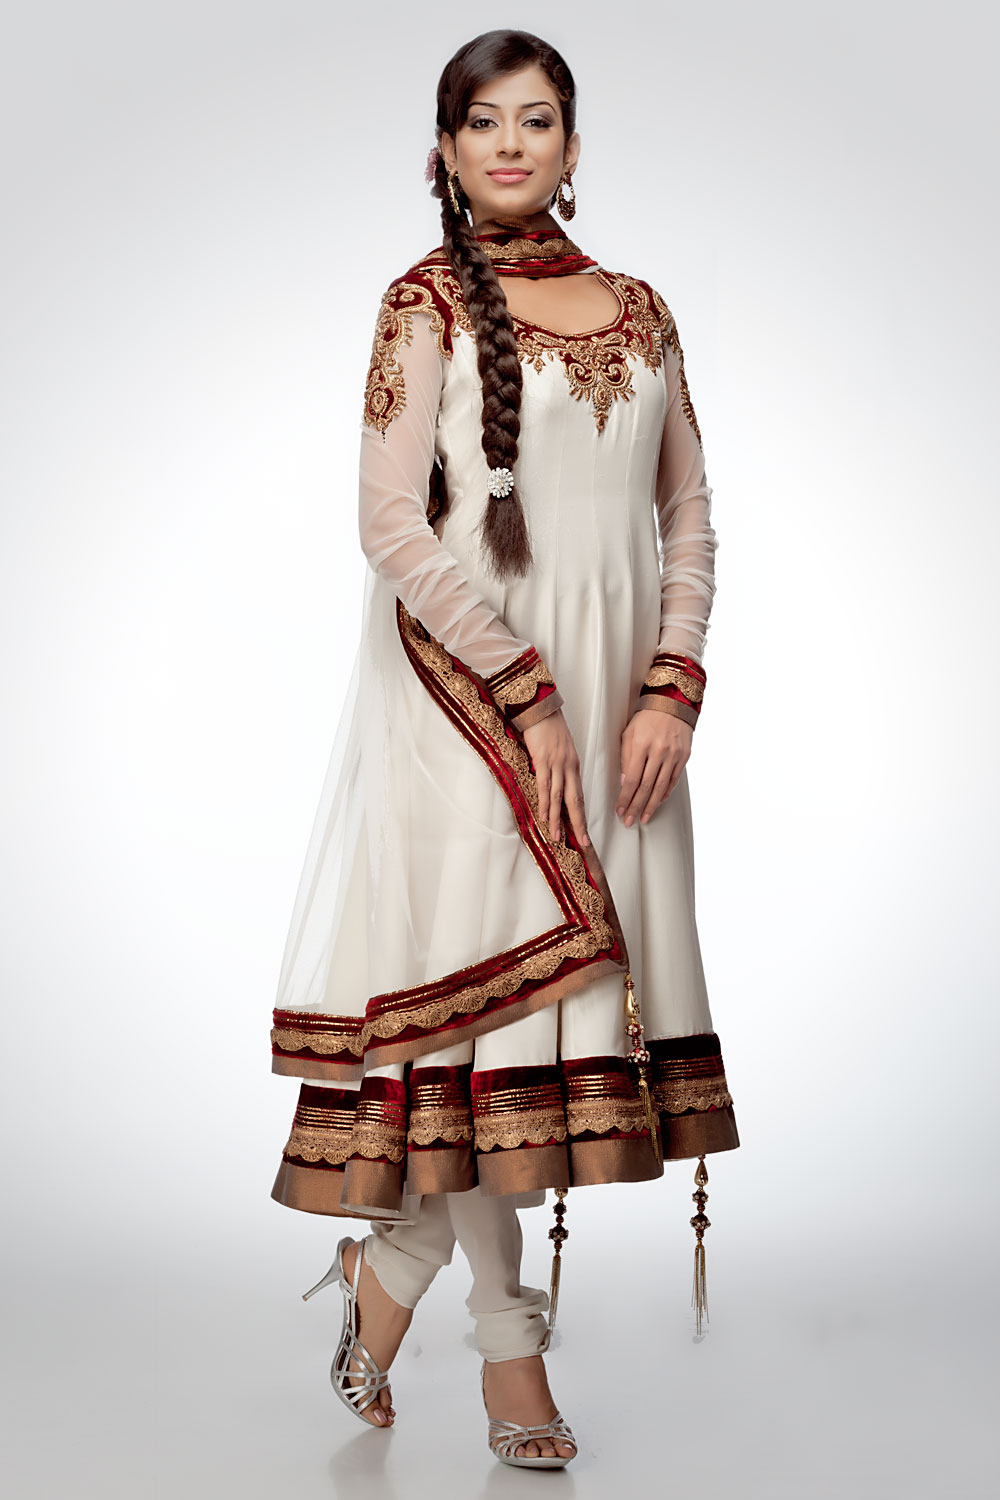 Simple Indian Clothing Stores And Boutique Stores In New Jersey  New Jersey